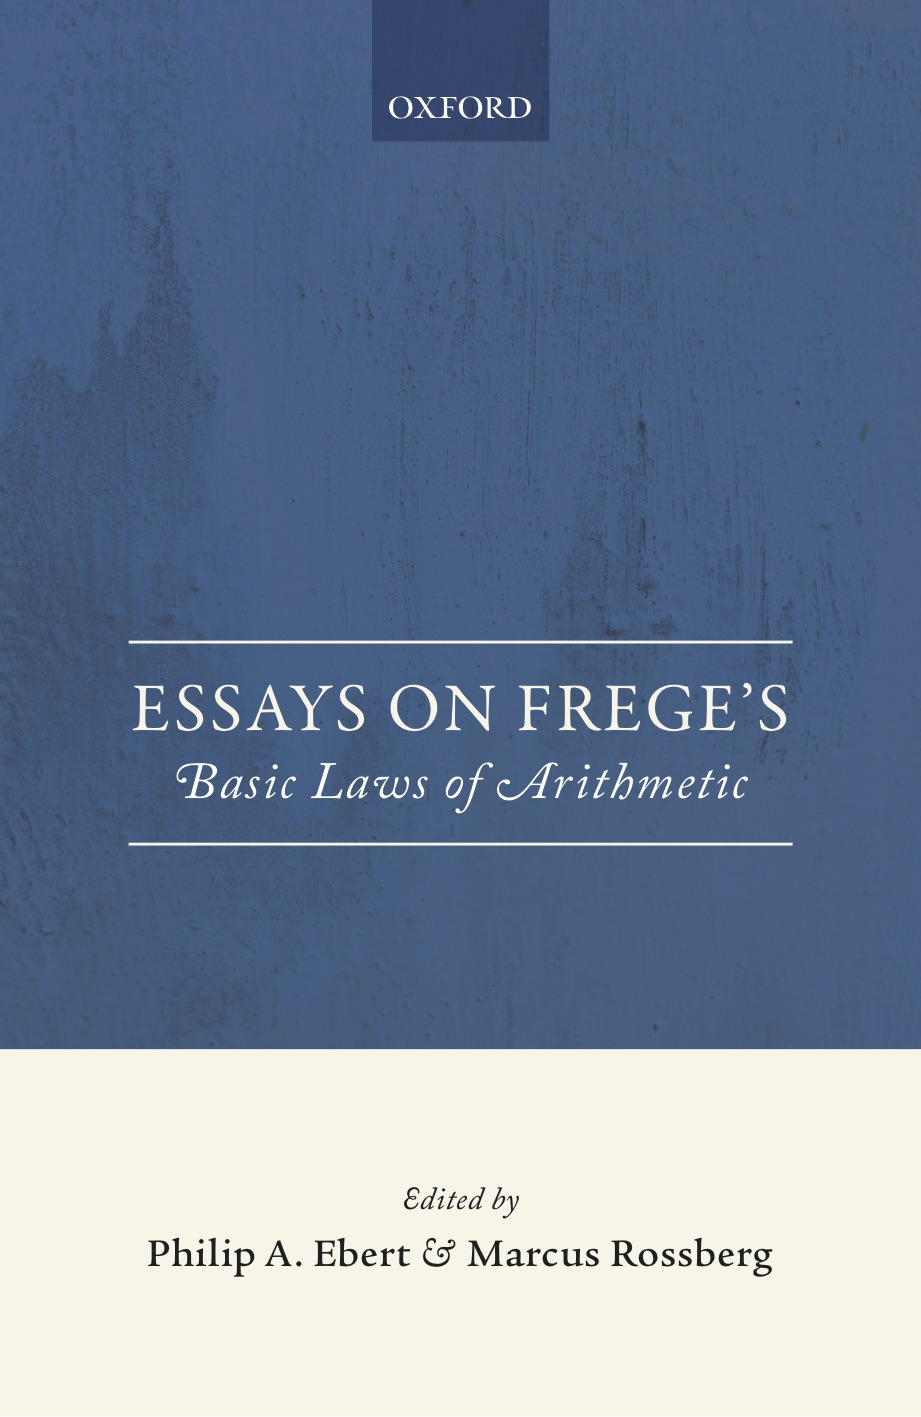 Essays on Frege's Basic Laws of Arithmetic, ed. Philip A. Ebert and Marcus Rossberg